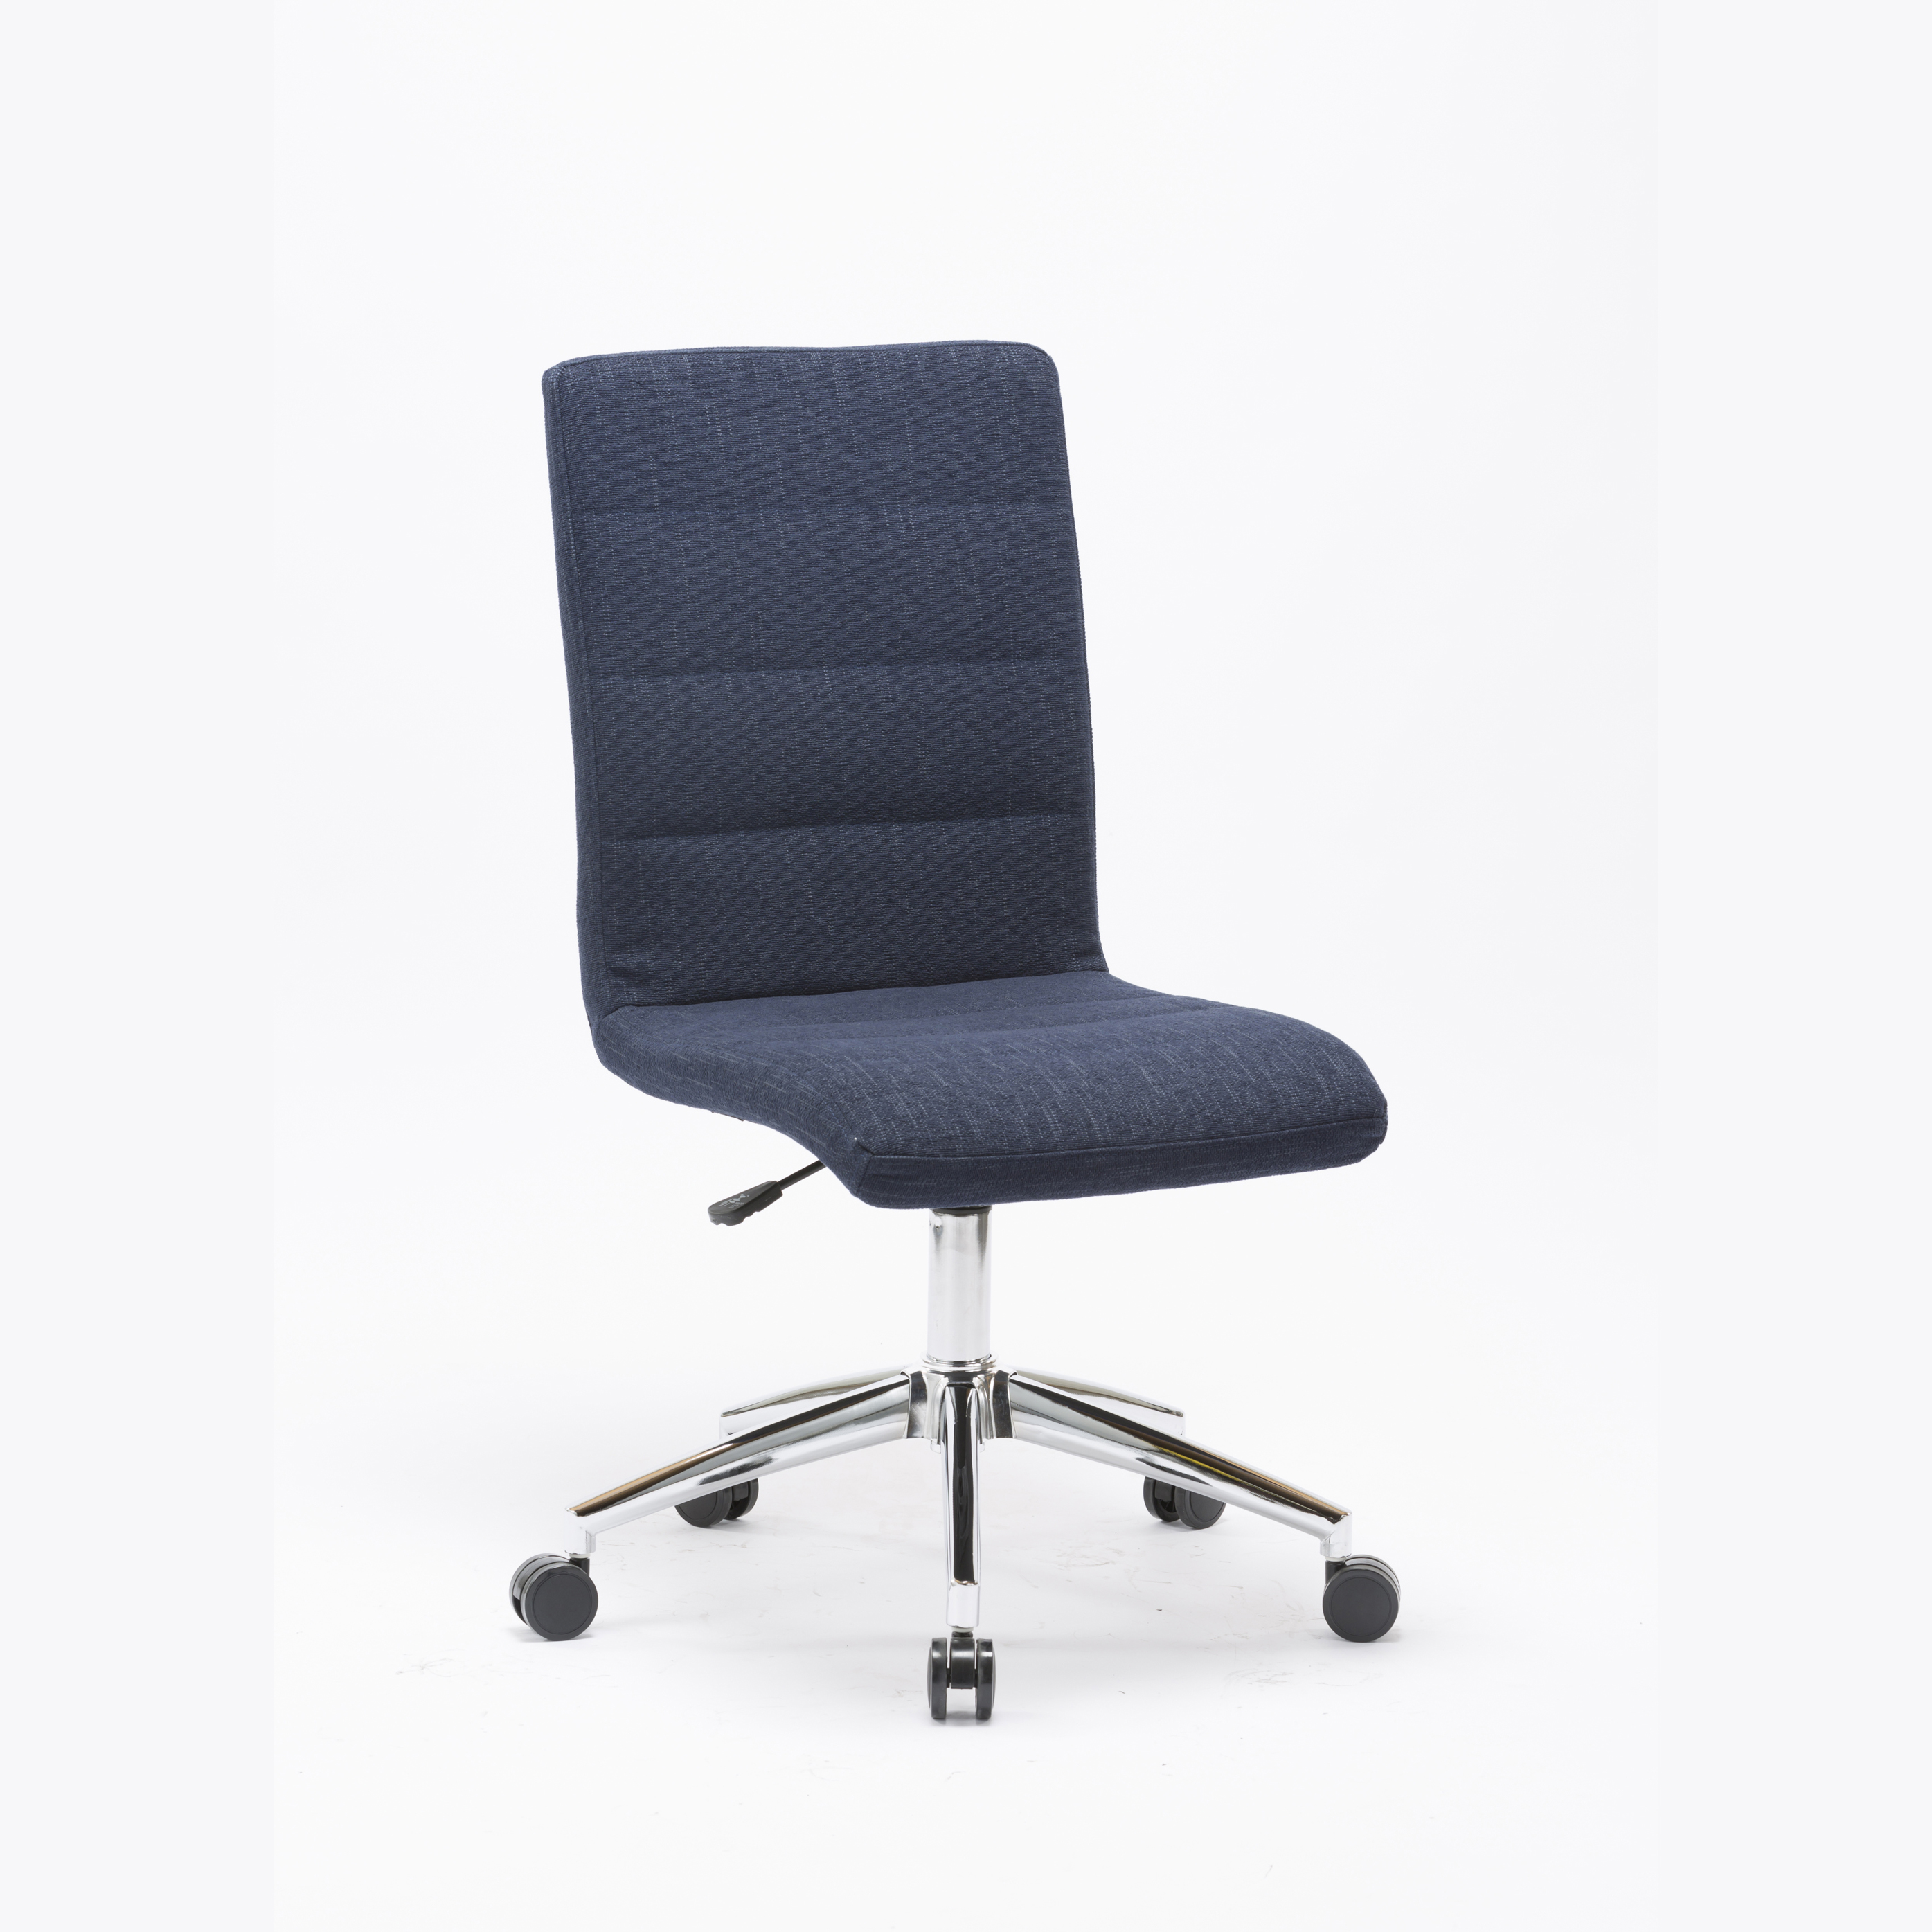 Blue Office Chair Fabric Office Chair Without Arms Modern Swivel Chair Executive Chair Wholesale Buy Amazon Office Chairs High Back Office Chair Swivel Office Chair Product On Alibaba Com